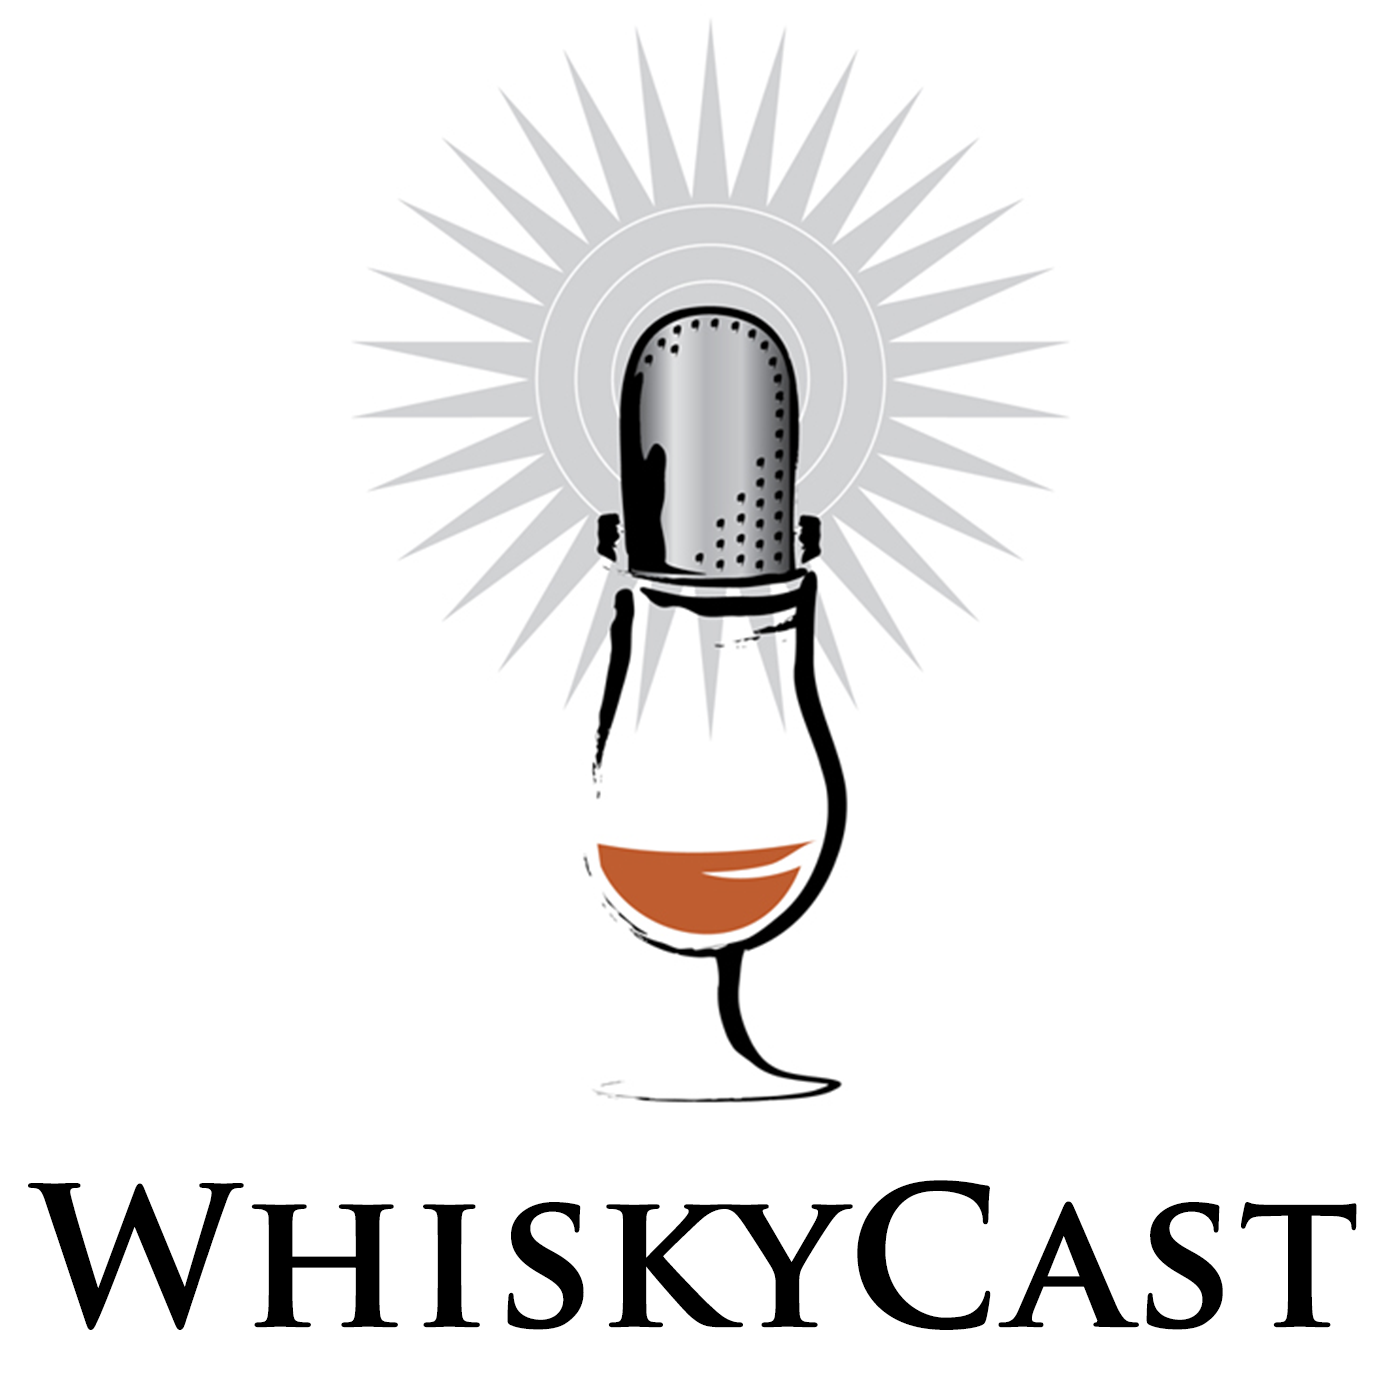 WhiskyCast Episode 460: January 11, 2014